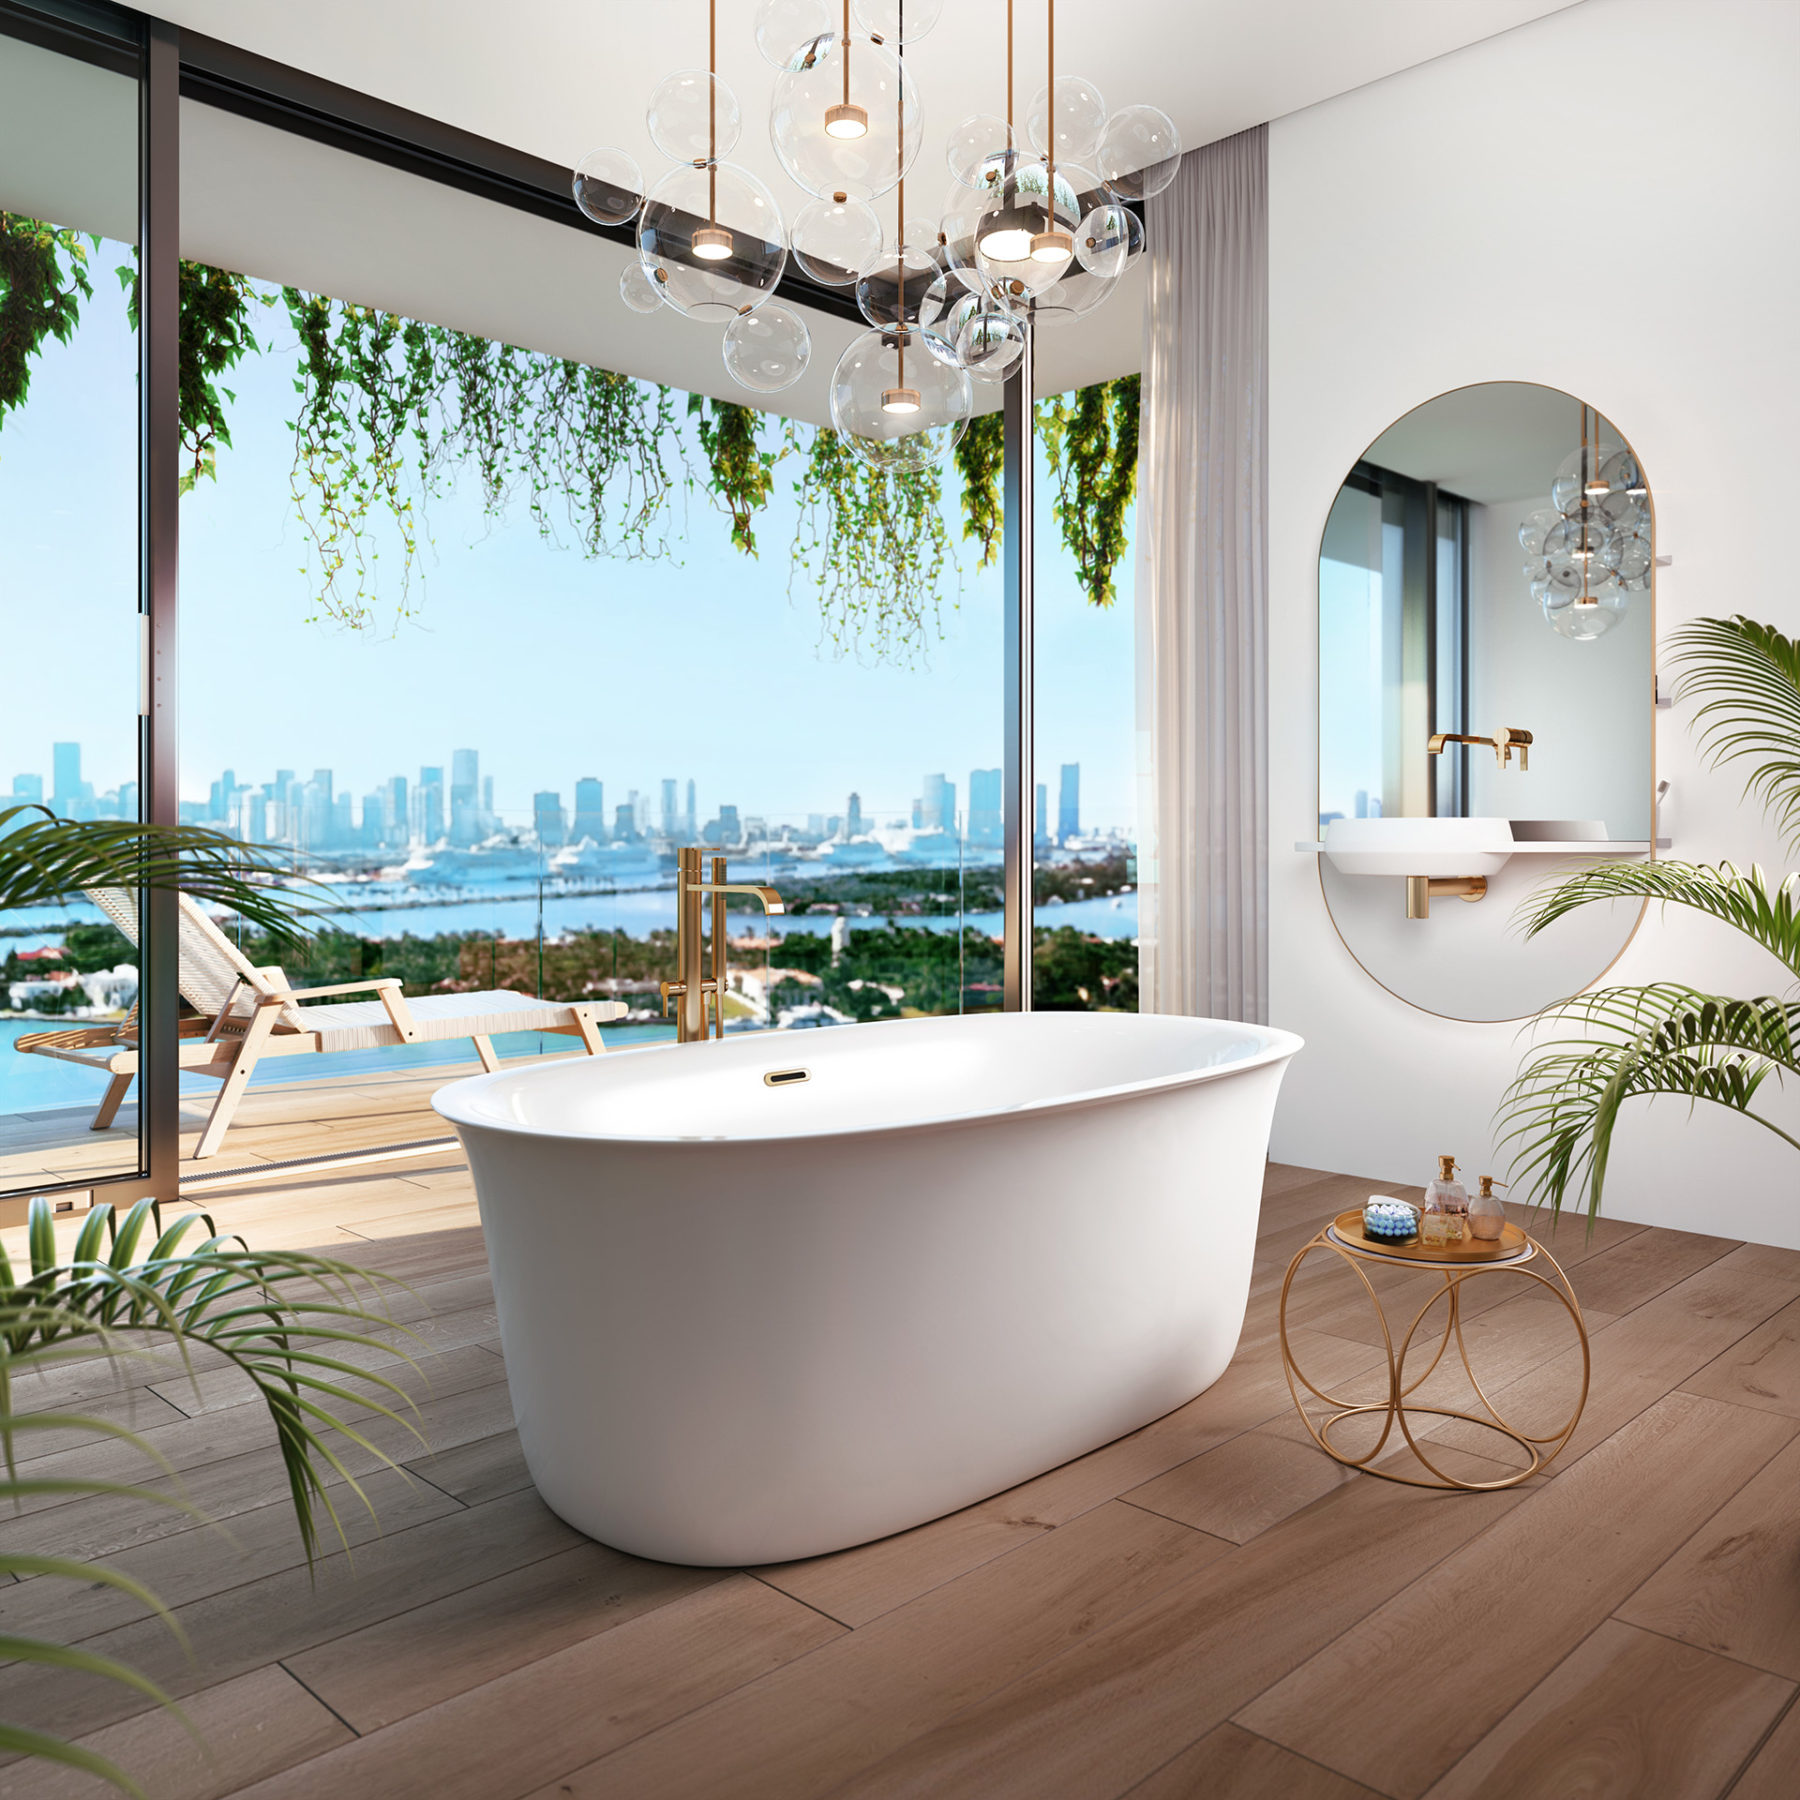 tropical-vibe-bathroom-cuivre-design-digital-imagery